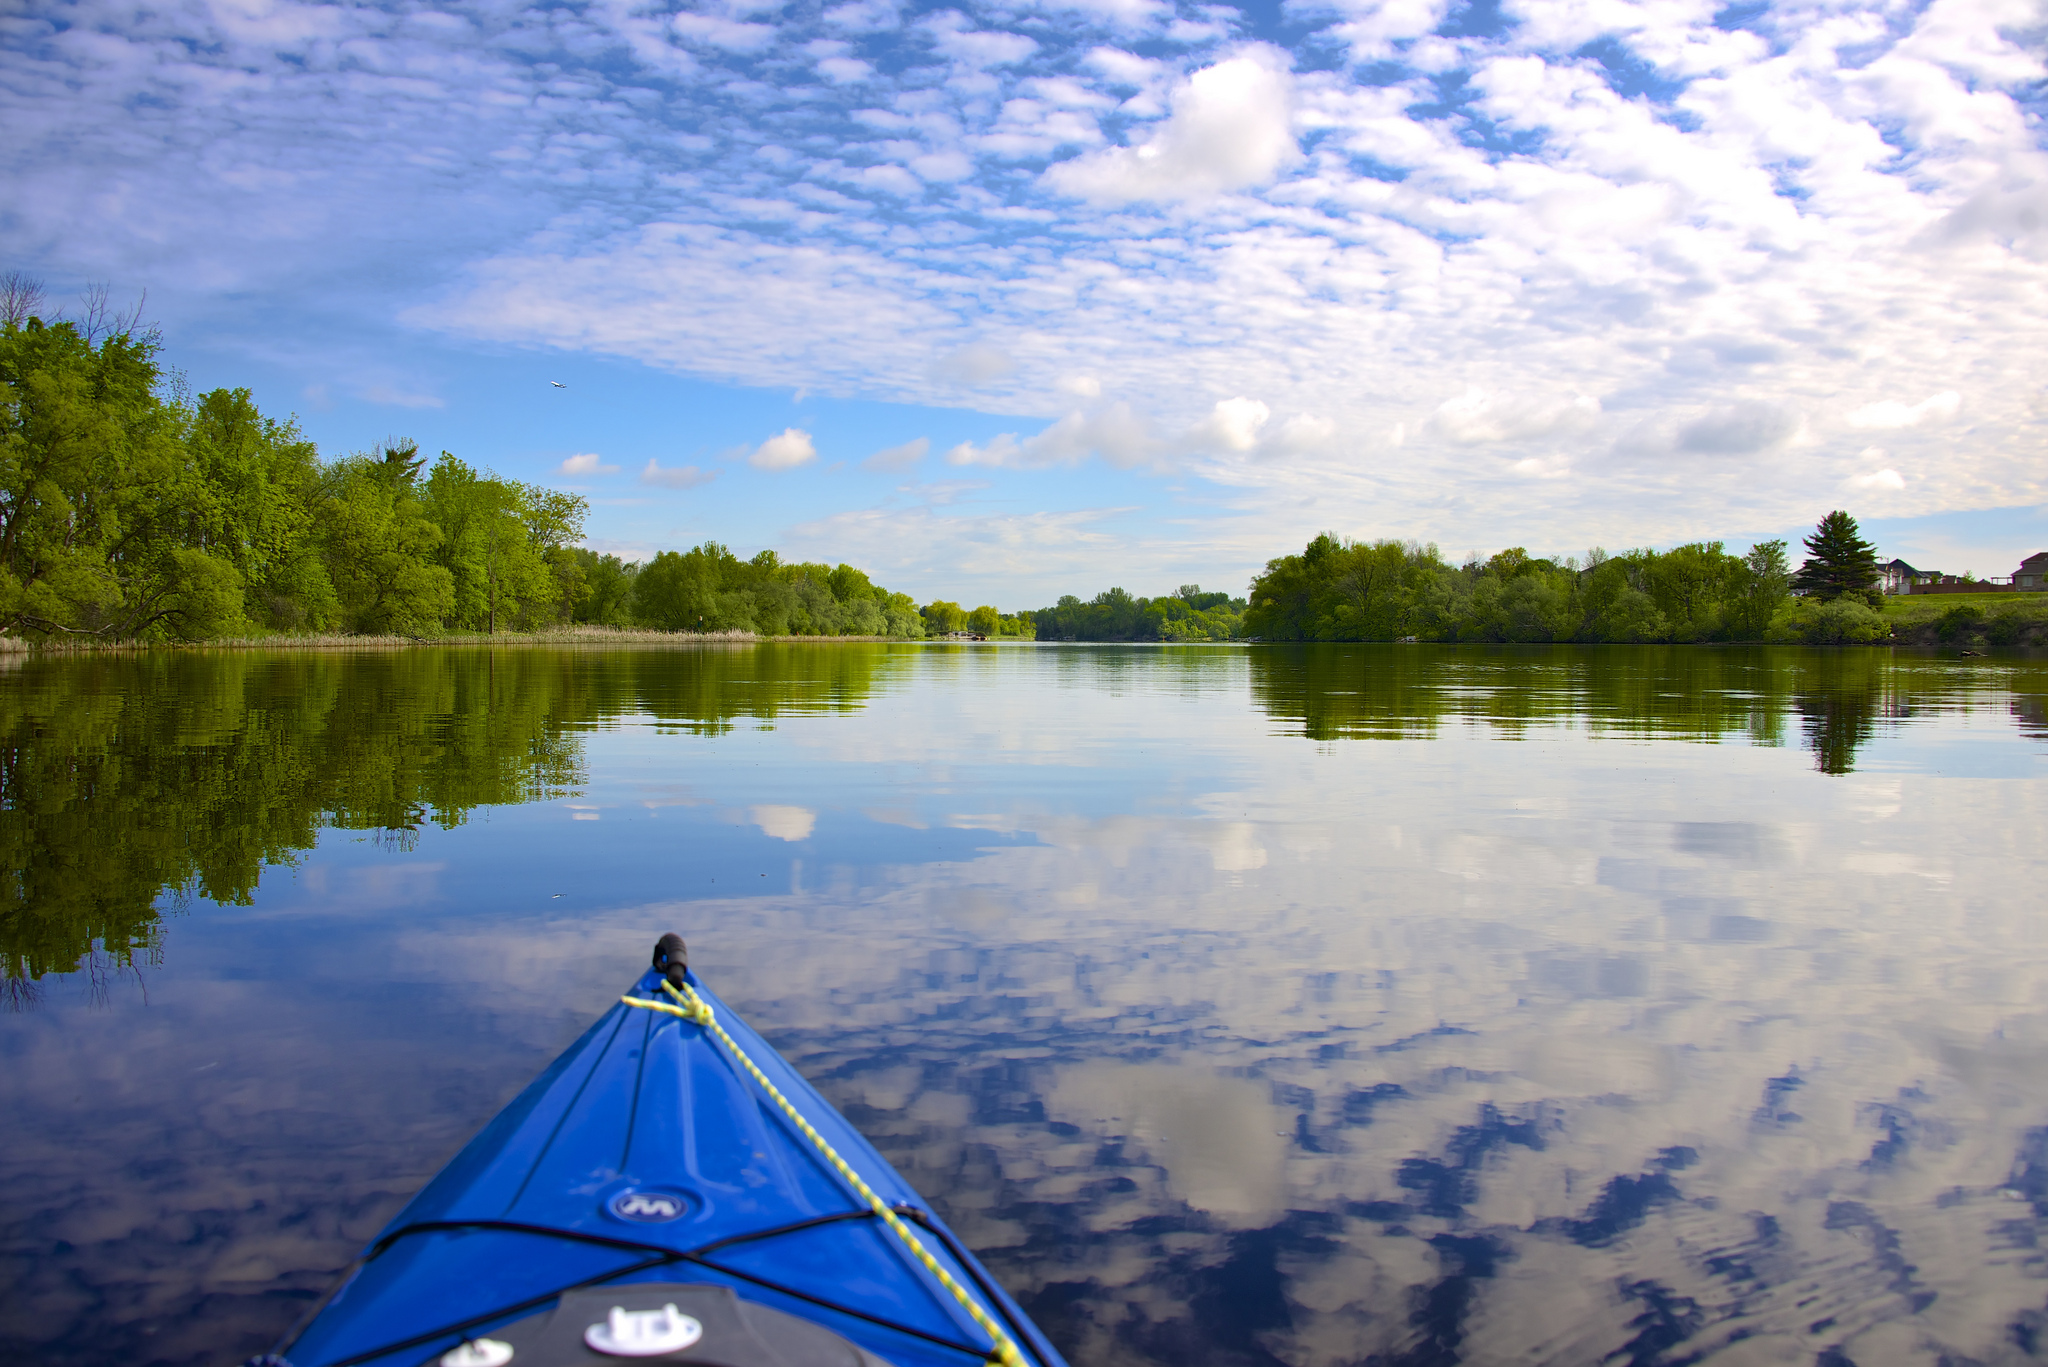 On the Rideau River at the Chapman Mills Conservation Area - south of Ottawa.